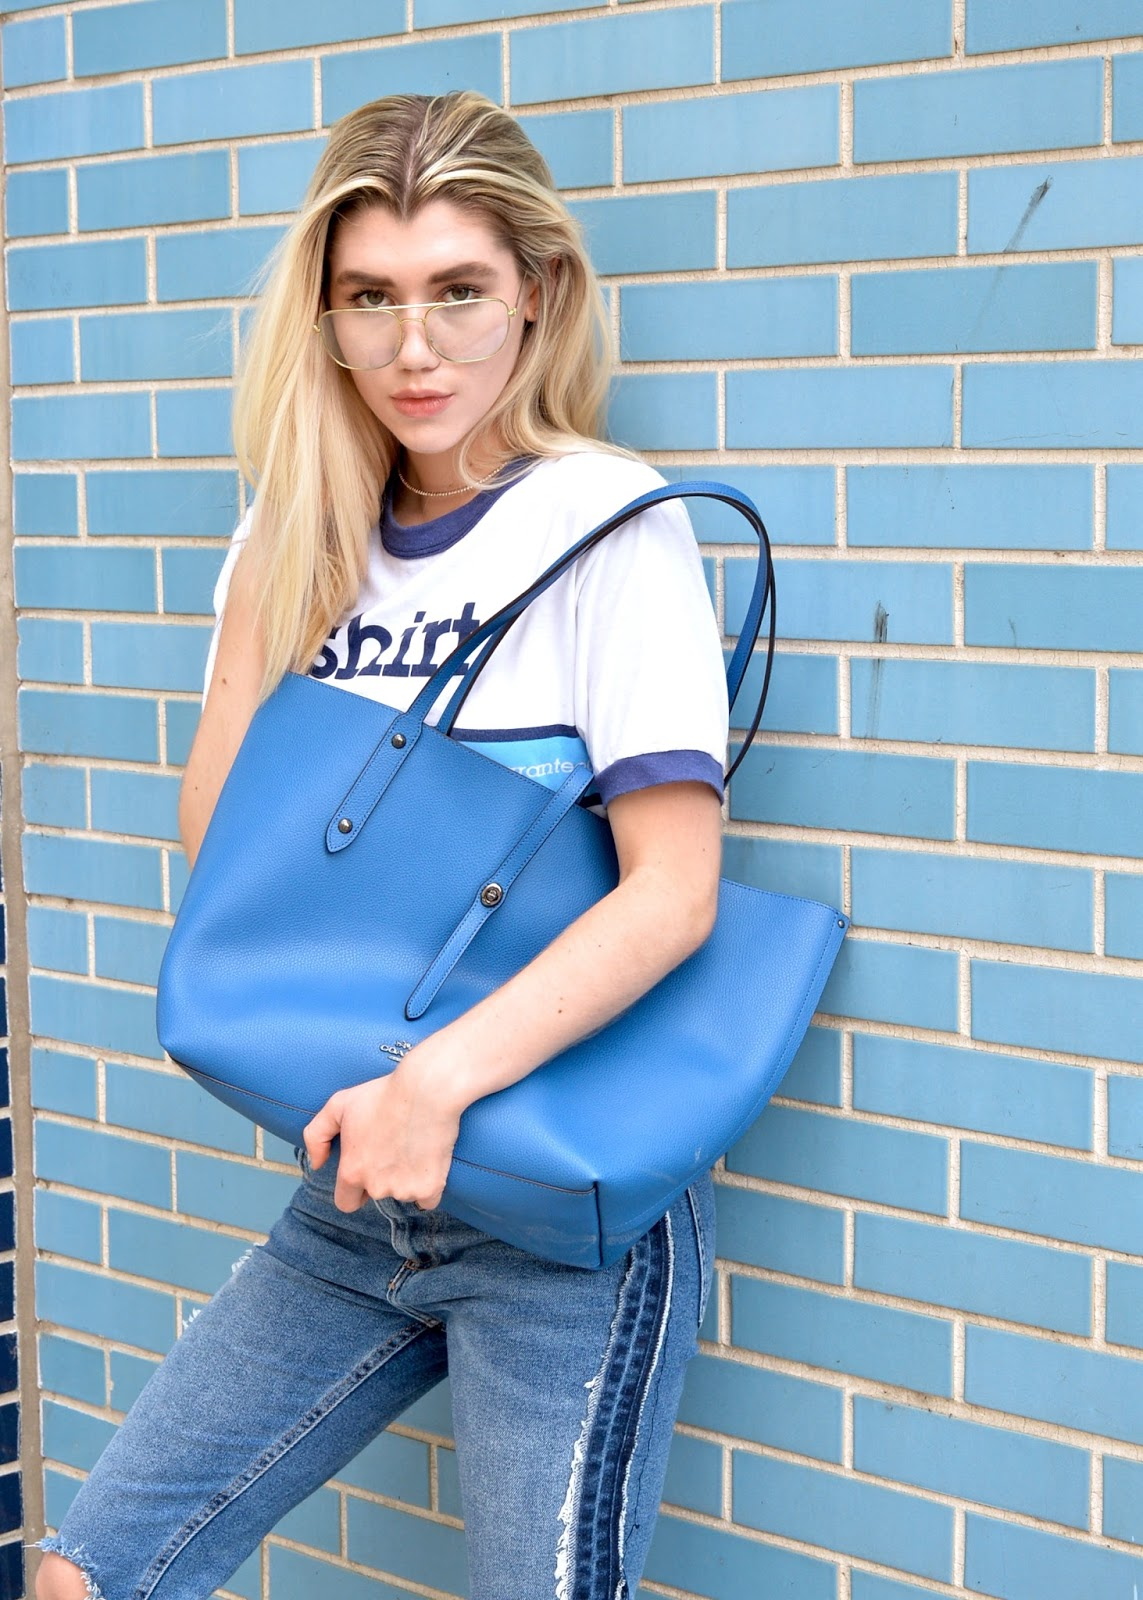 A Moment in Blue: How to Style a Monochromatic Look + Whats in My Purse